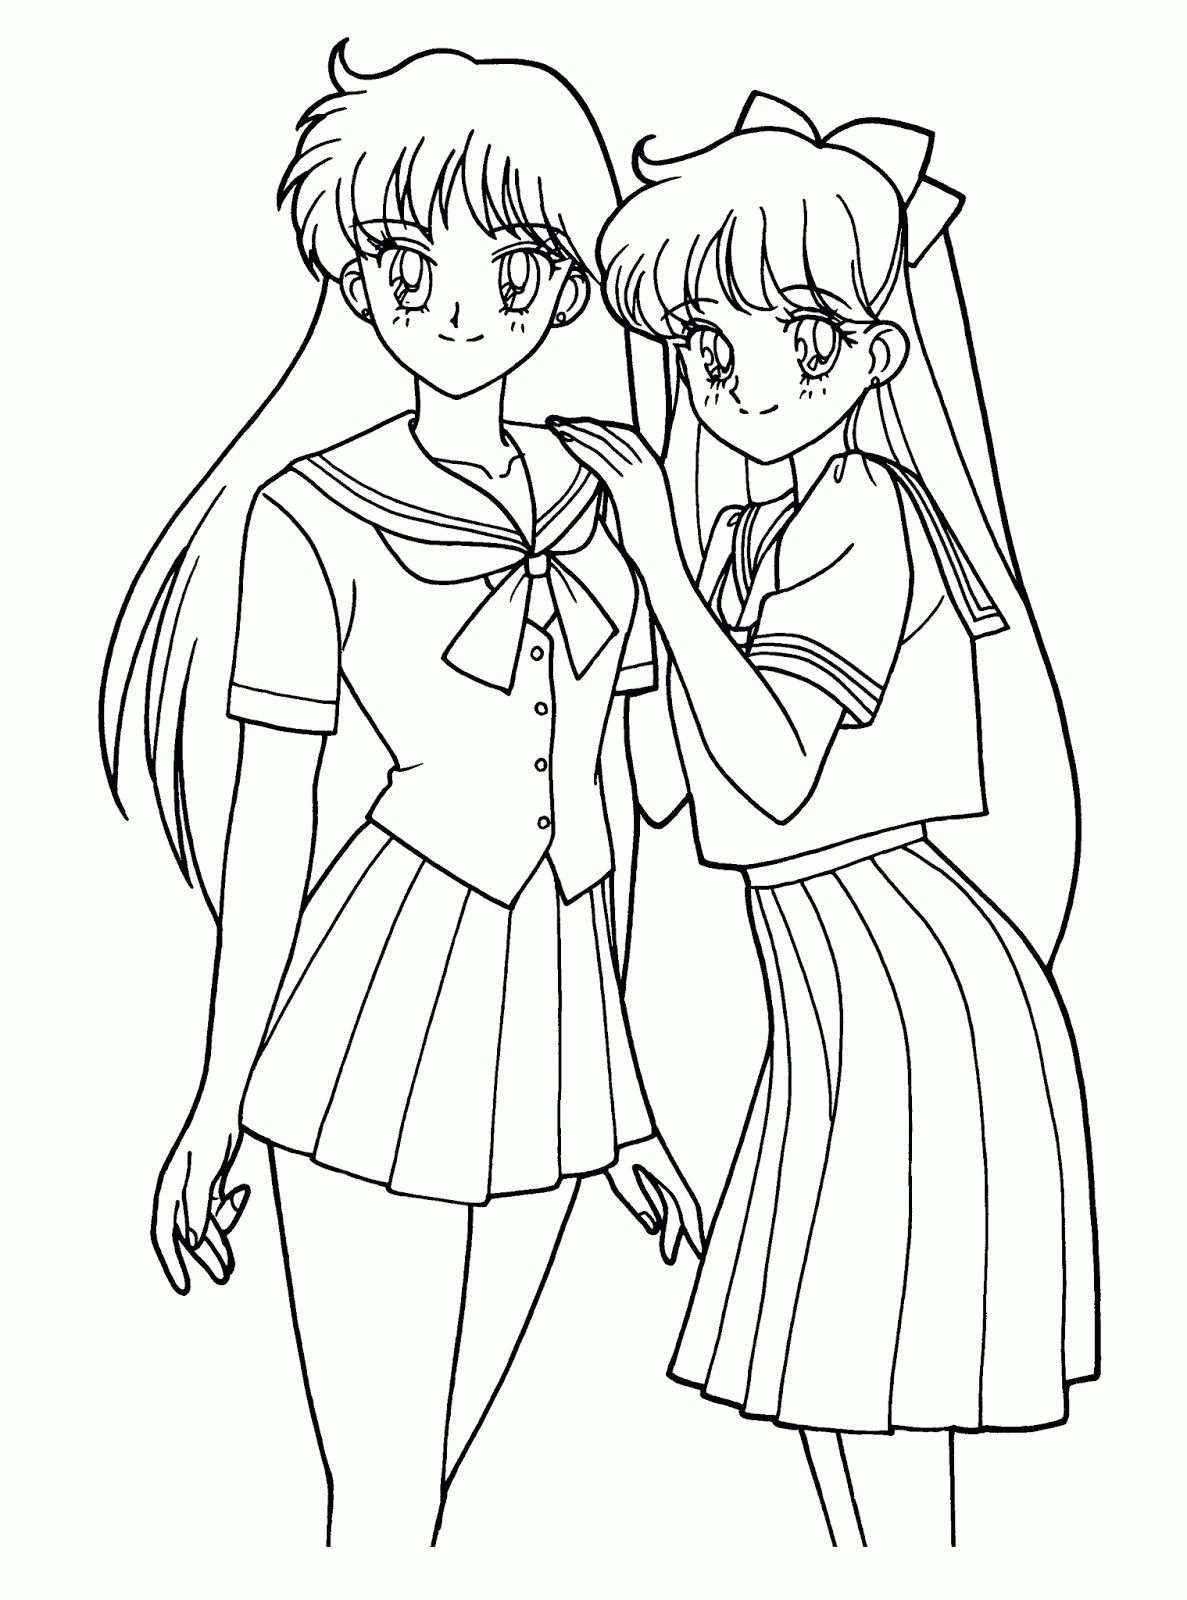 1187x1600 Manga Coloring Pages Fresh Free Printable Chibi Coloring Pages